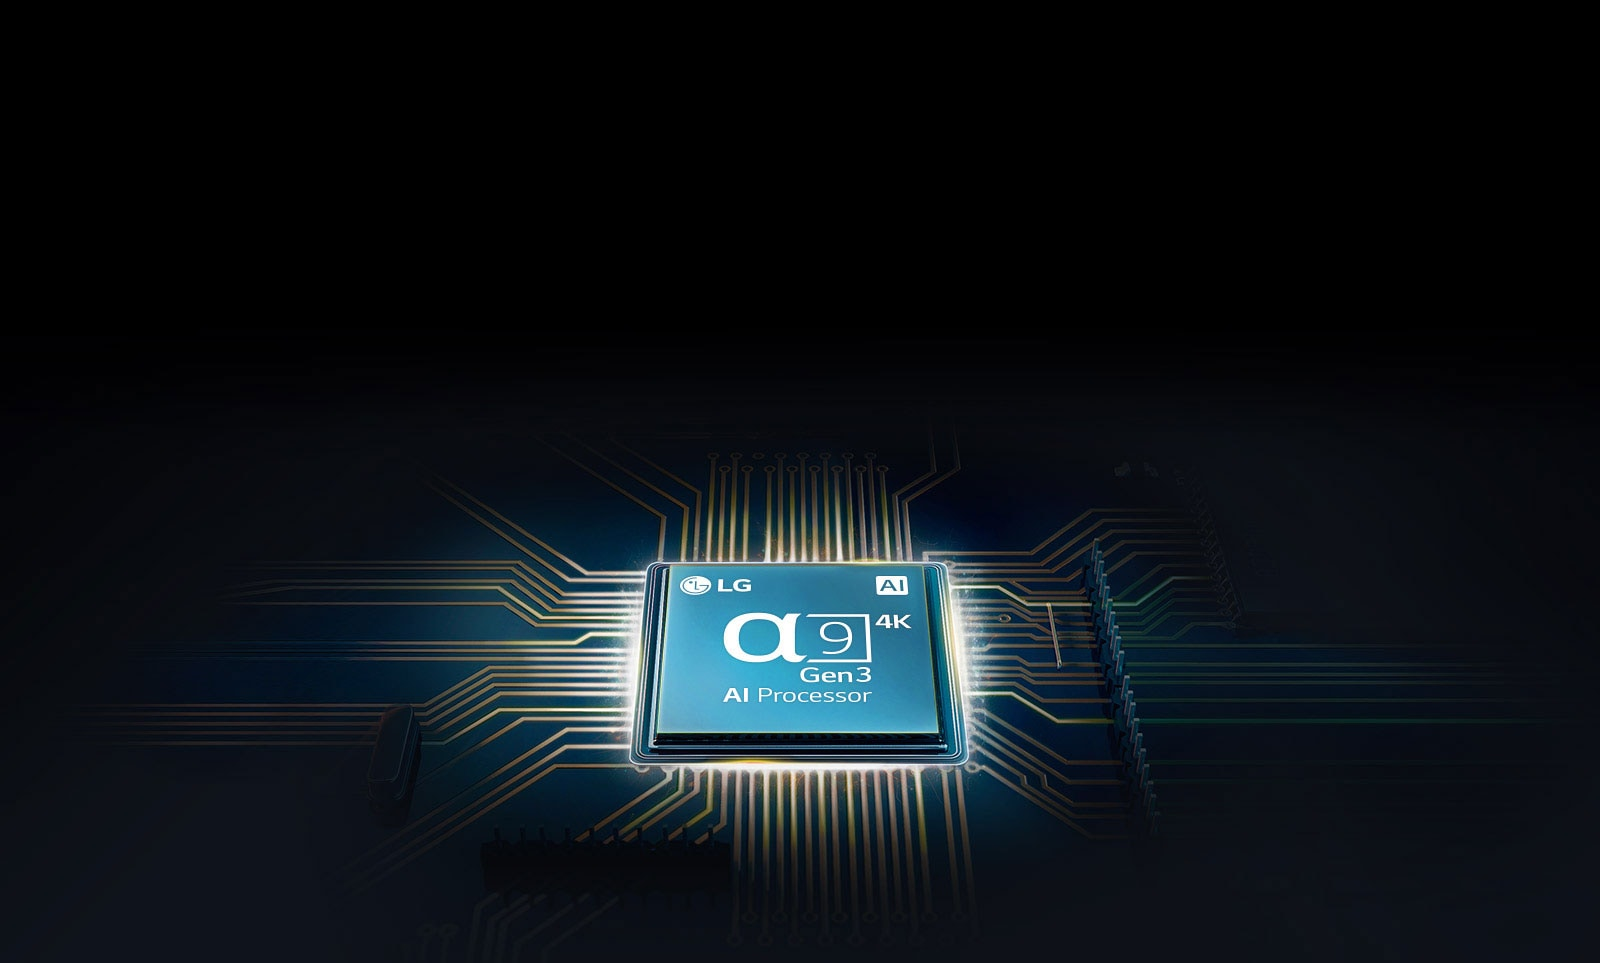 Alpha 9 chip mounted on a TV mainboard